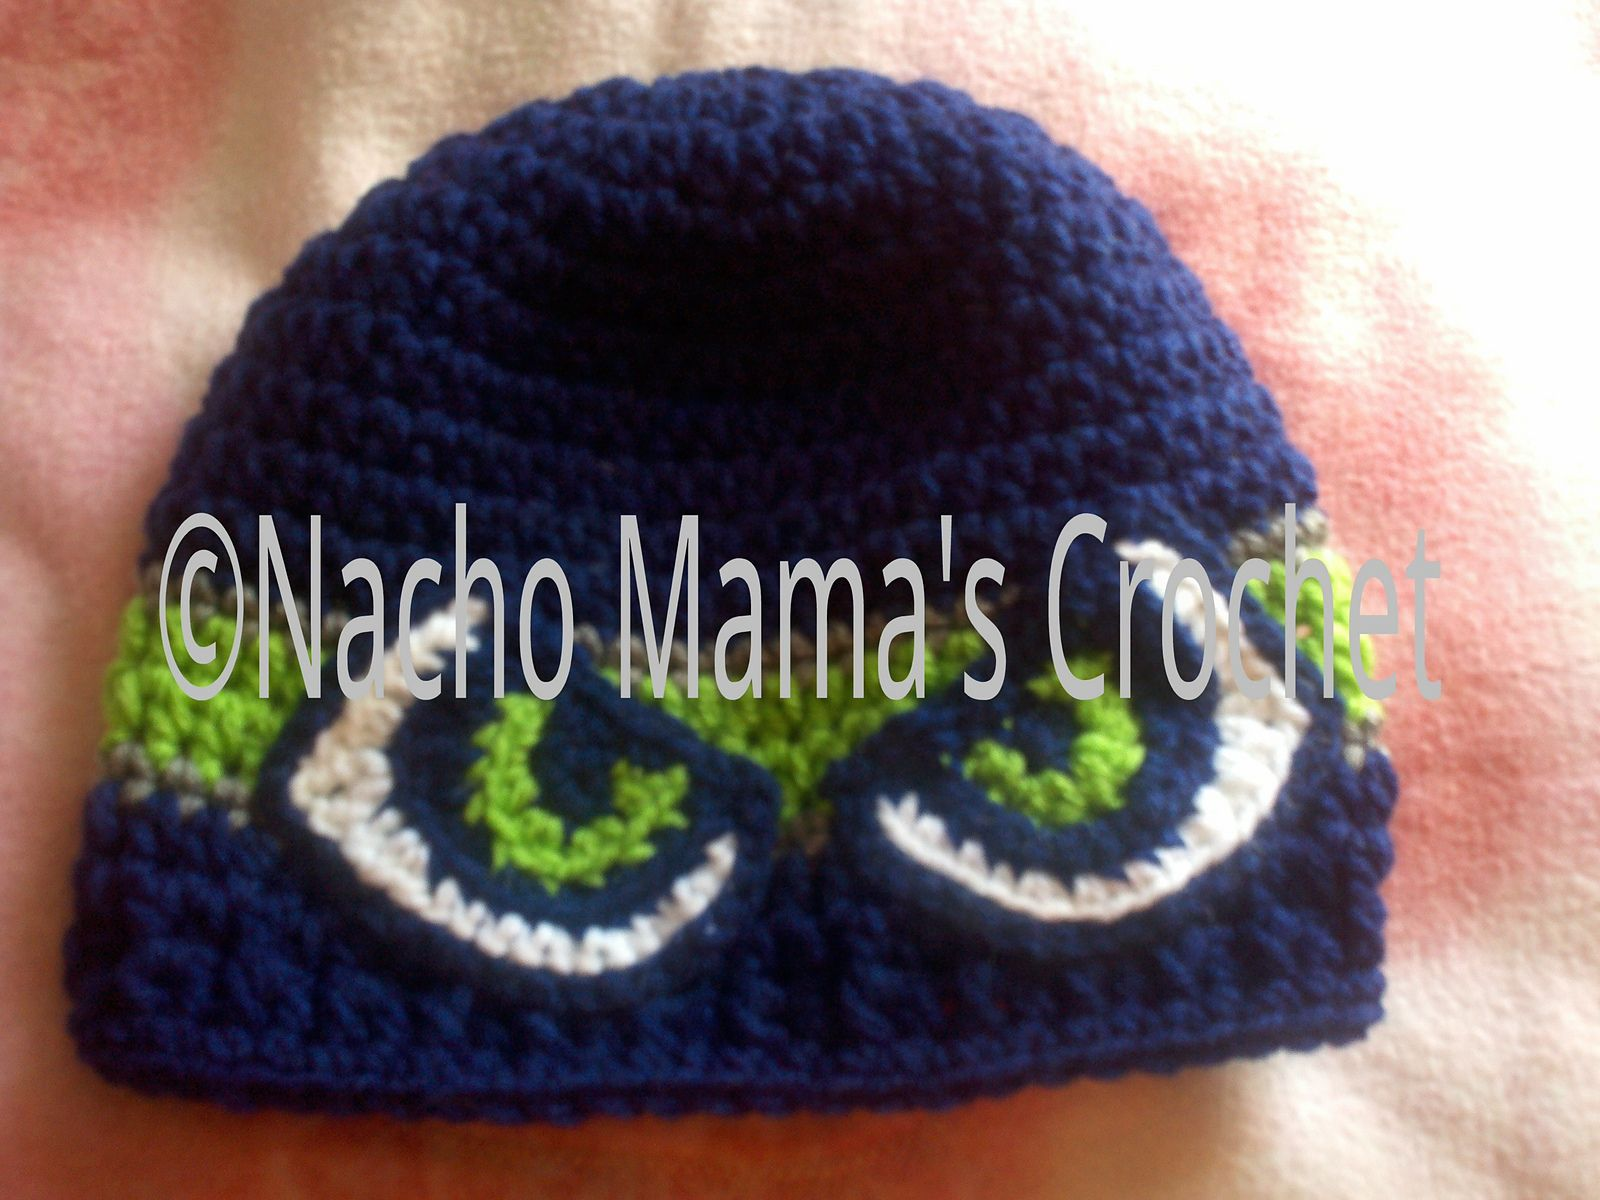 Ravelry gamedayanyday beanie by nacho mamaus crochet sewing